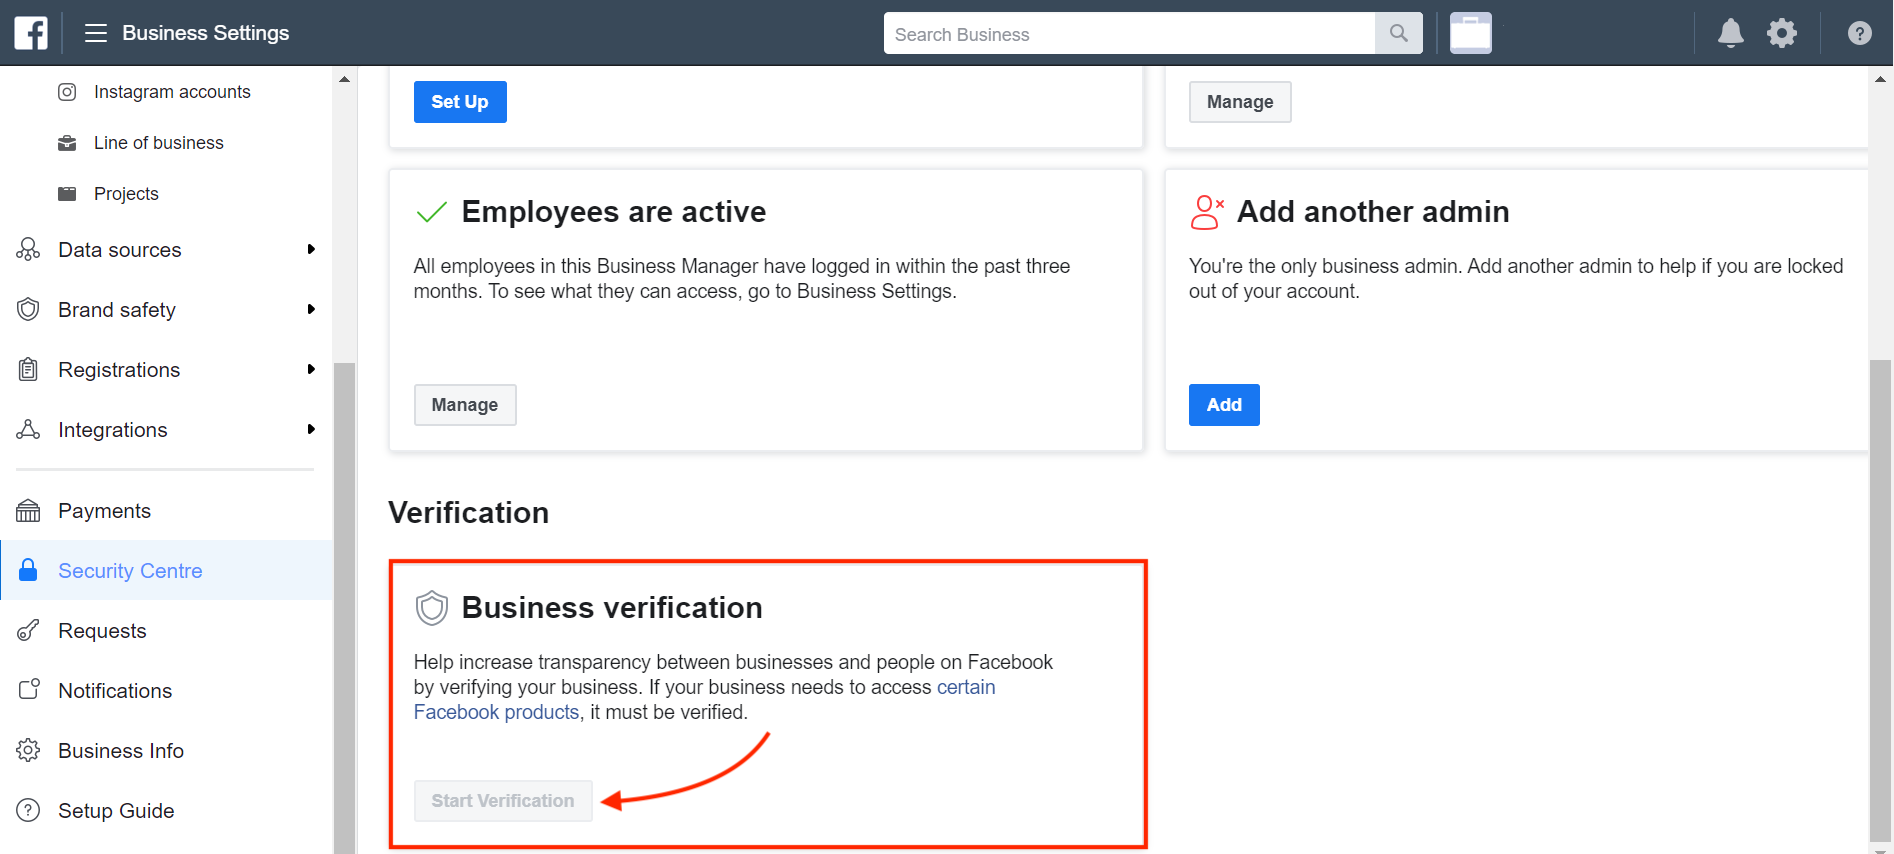 What should I do if my Business Verification button is Greyed out?